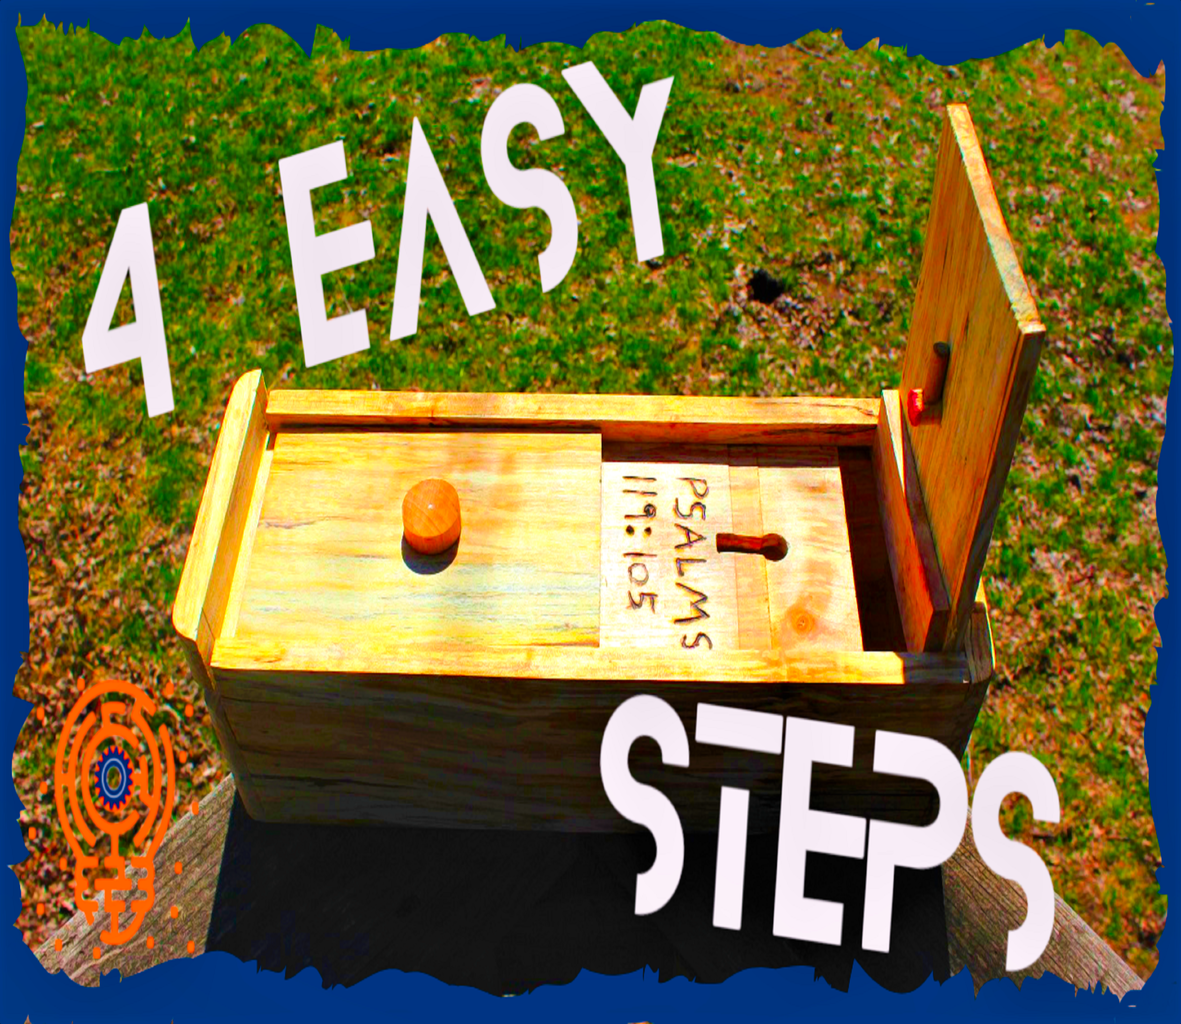 How to Make an Easy 4 Step Puzzle Box (Out of a Log)